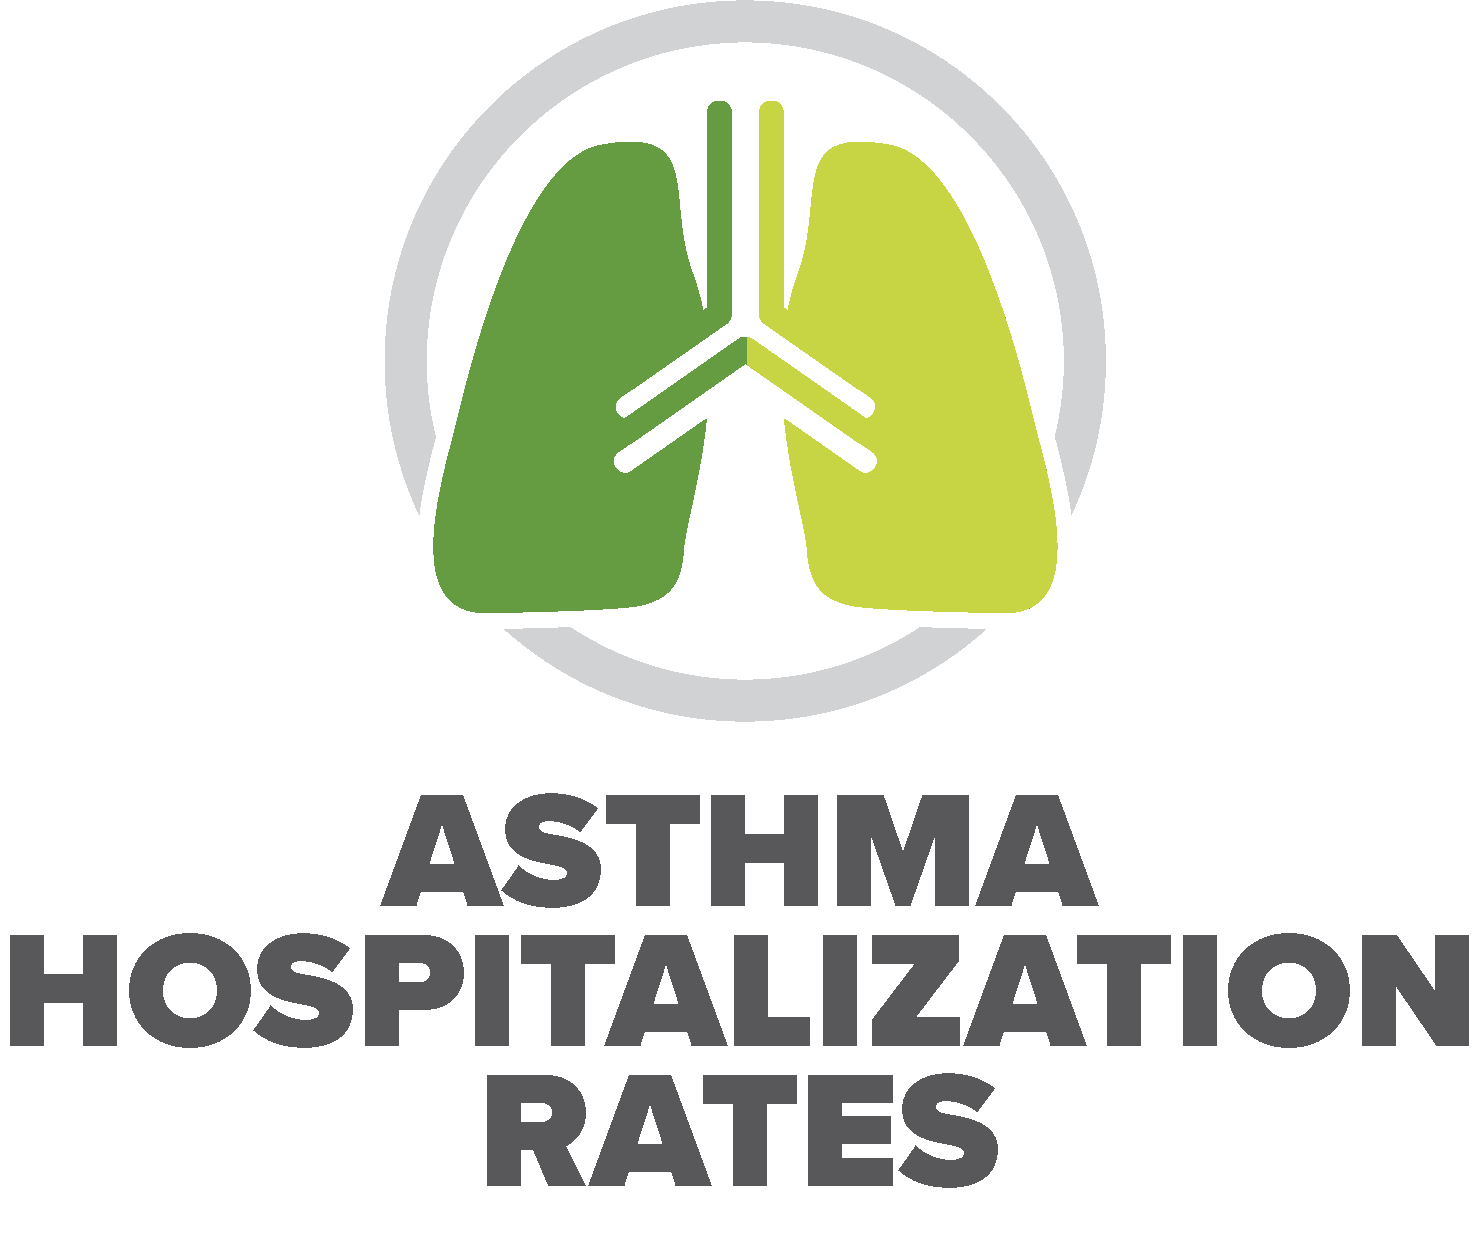 asthma hospitalization rates